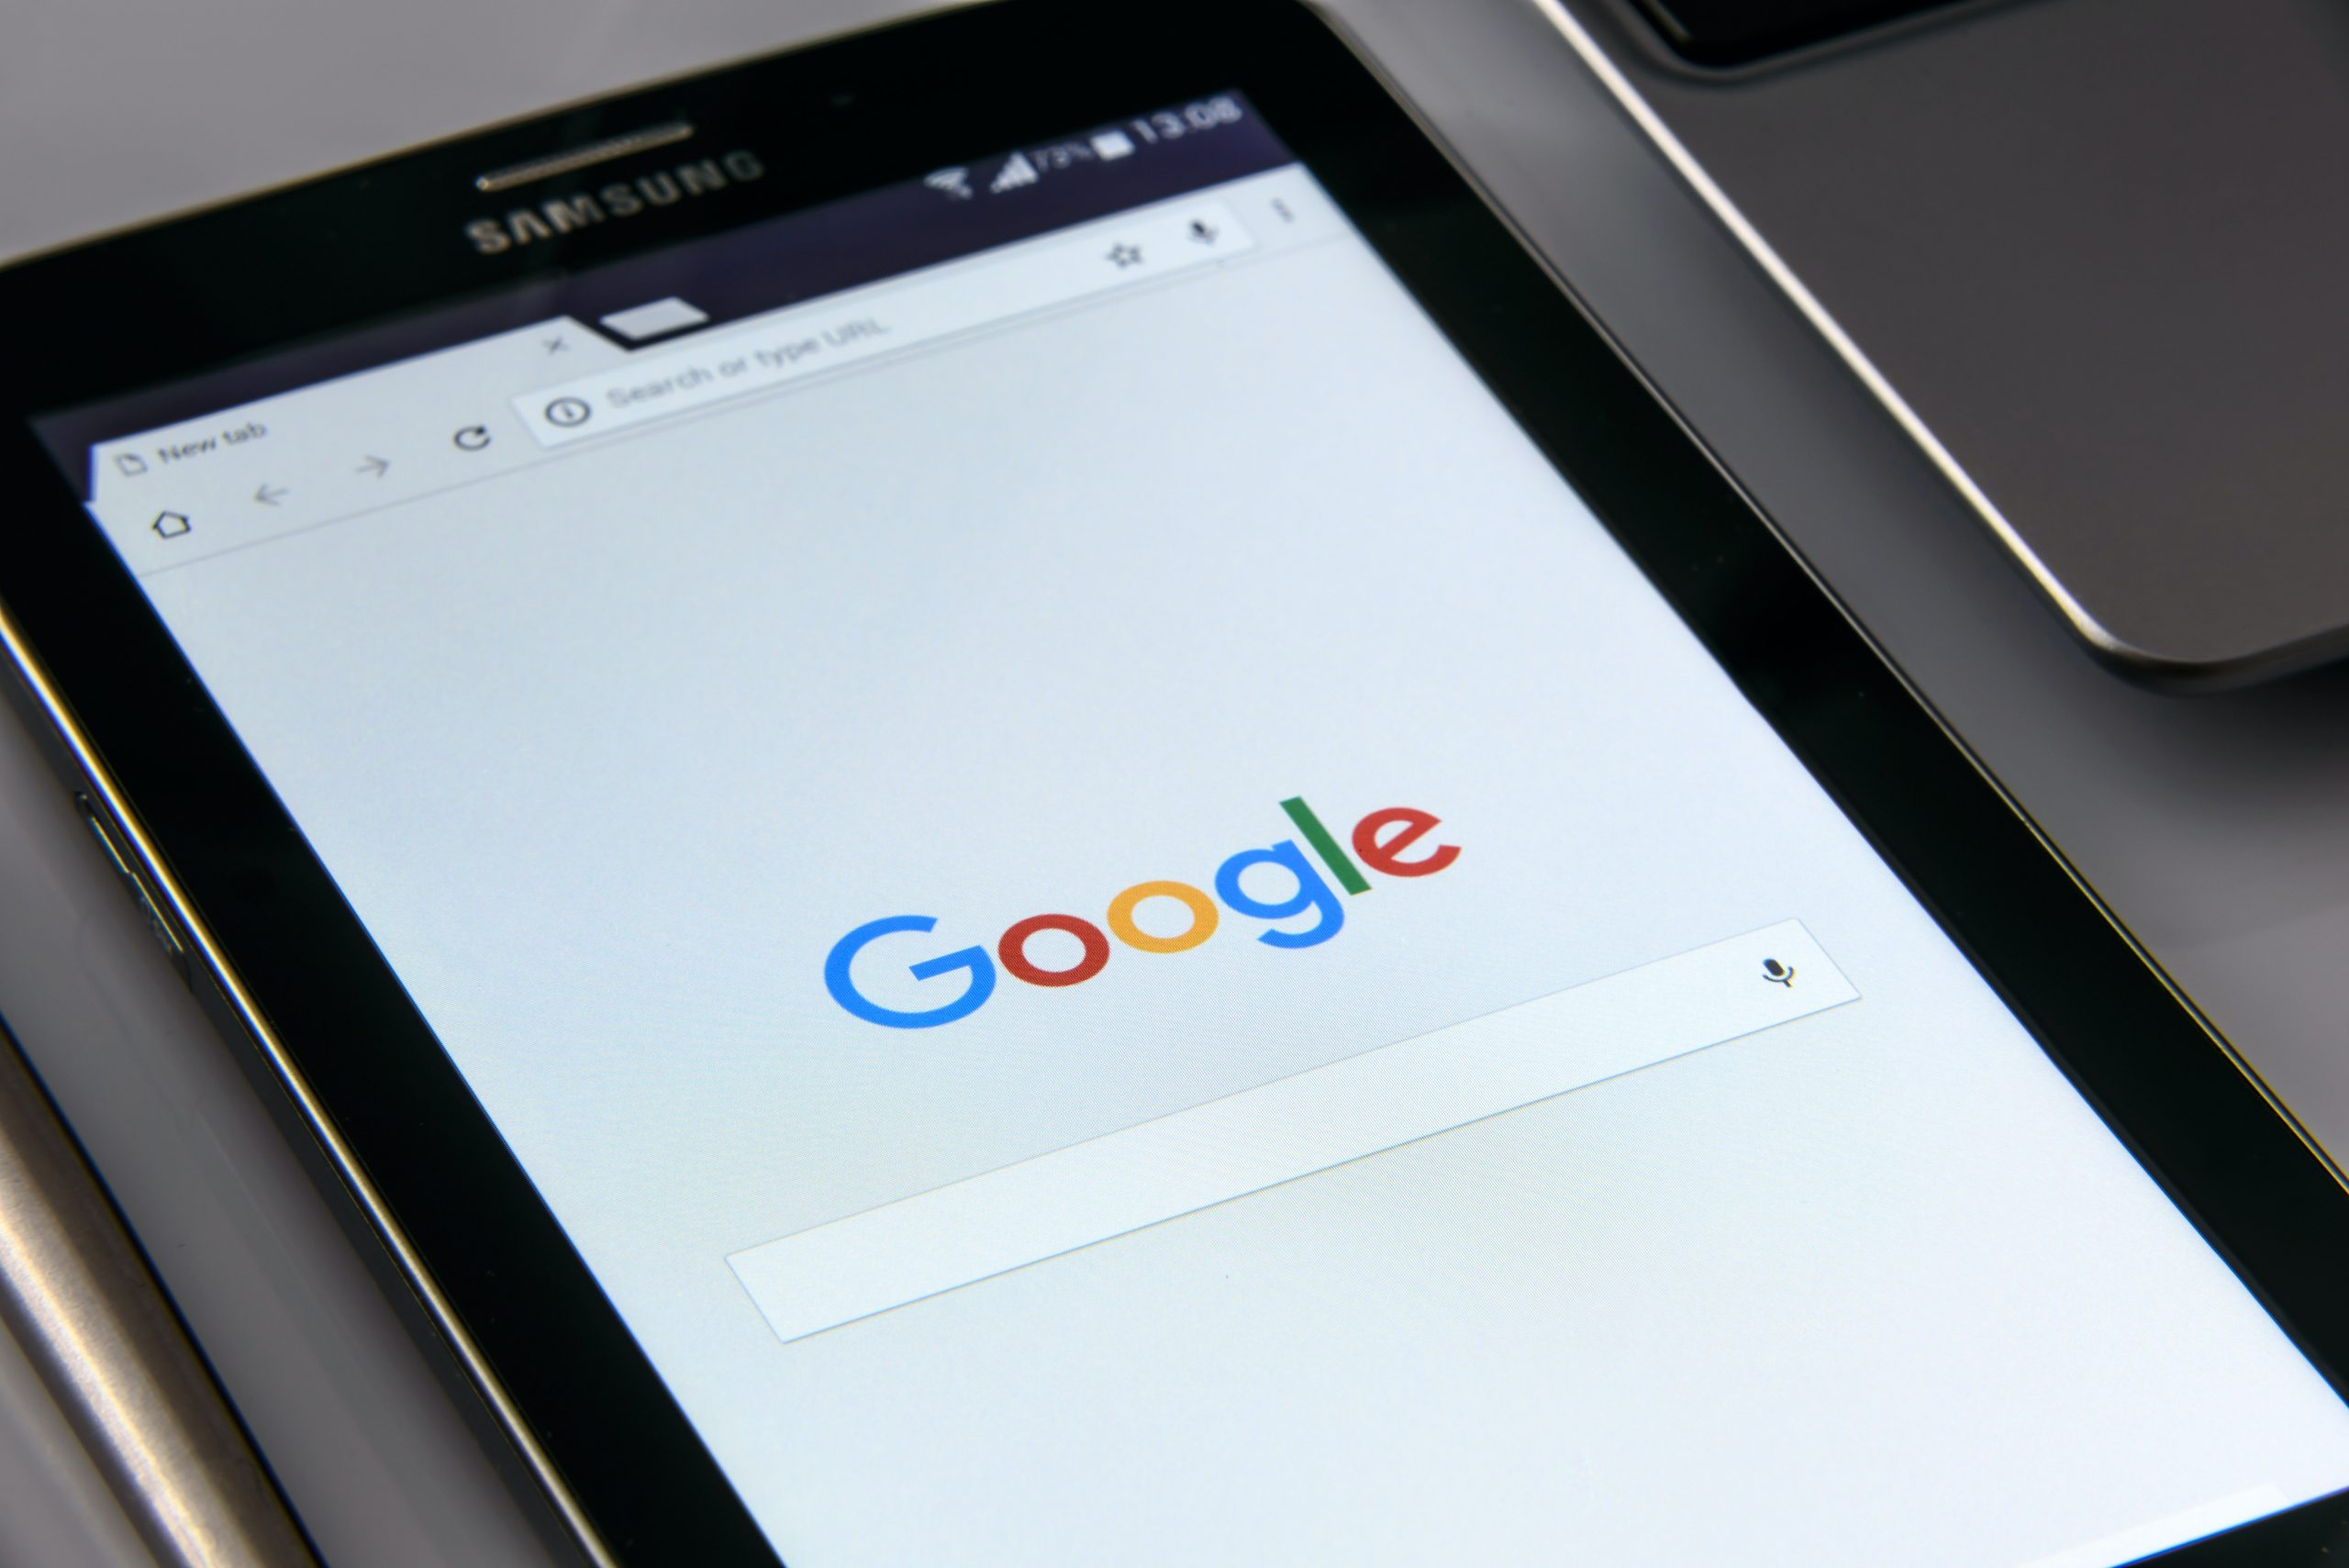 Did you hear about the updates in the UK's Financial Policy of Google Ads? image